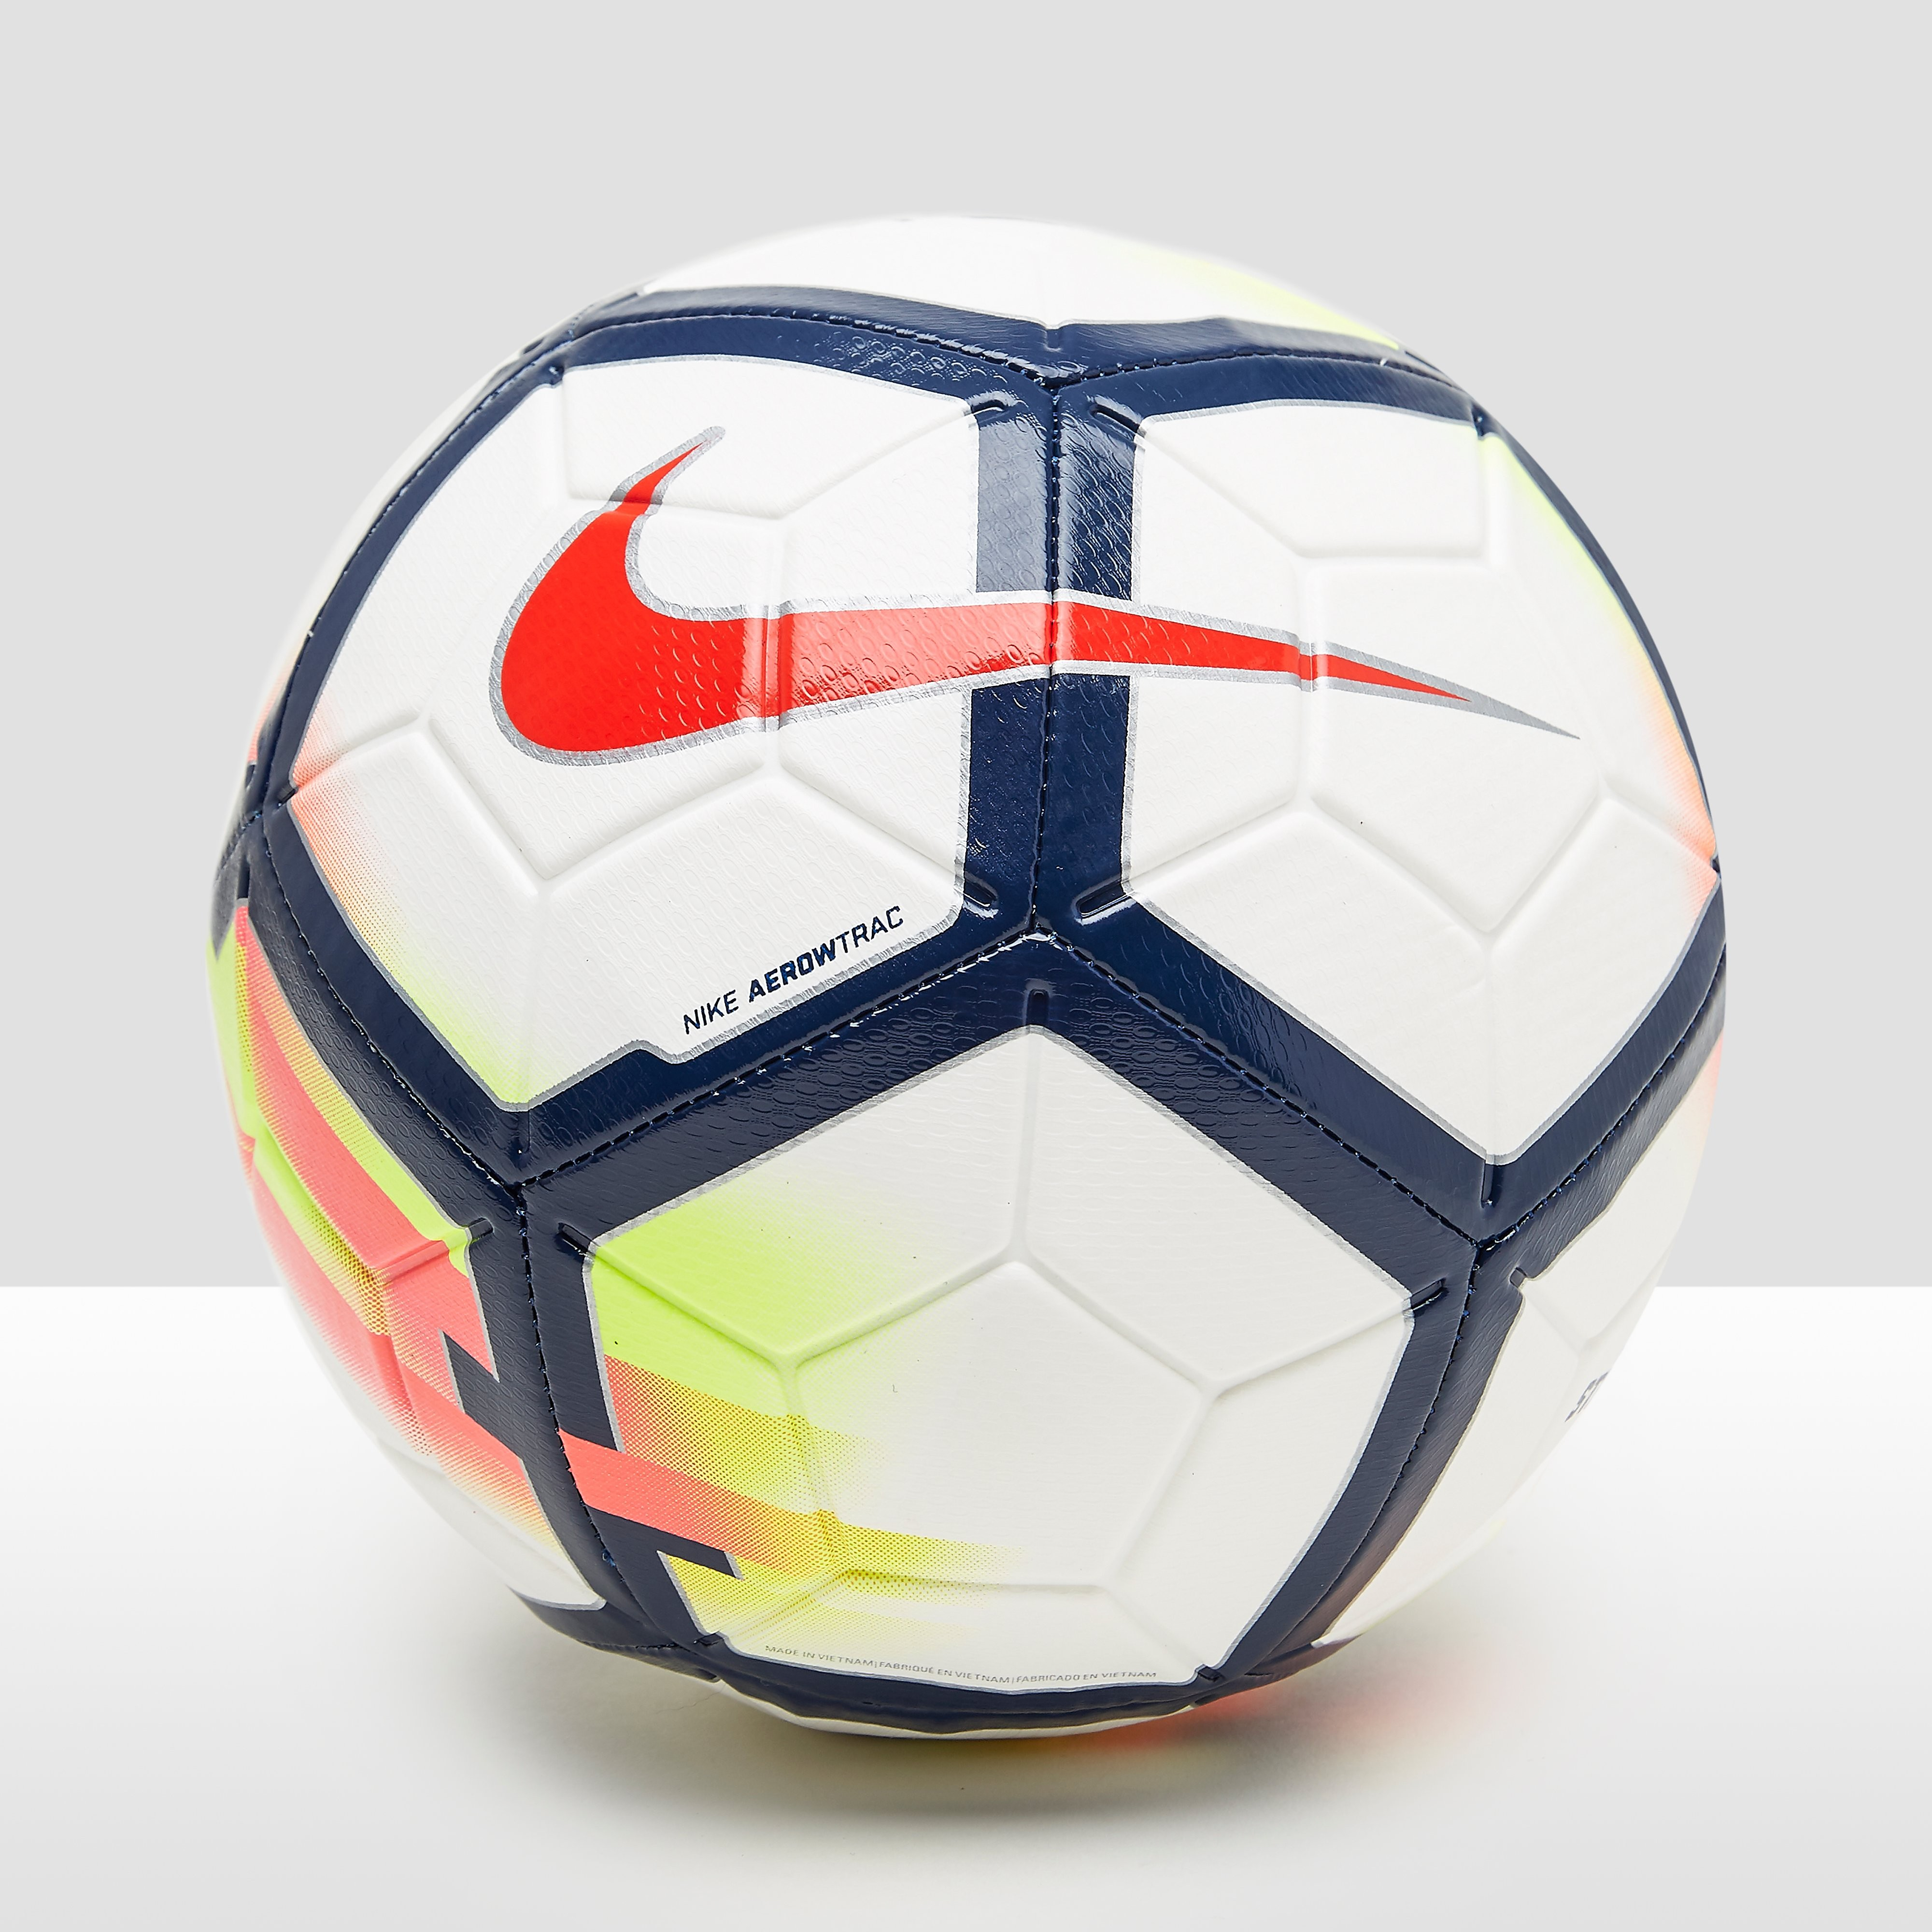 NIKE PREMIER LEAGUE STRIKE VOETBAL WIT/BLAUW